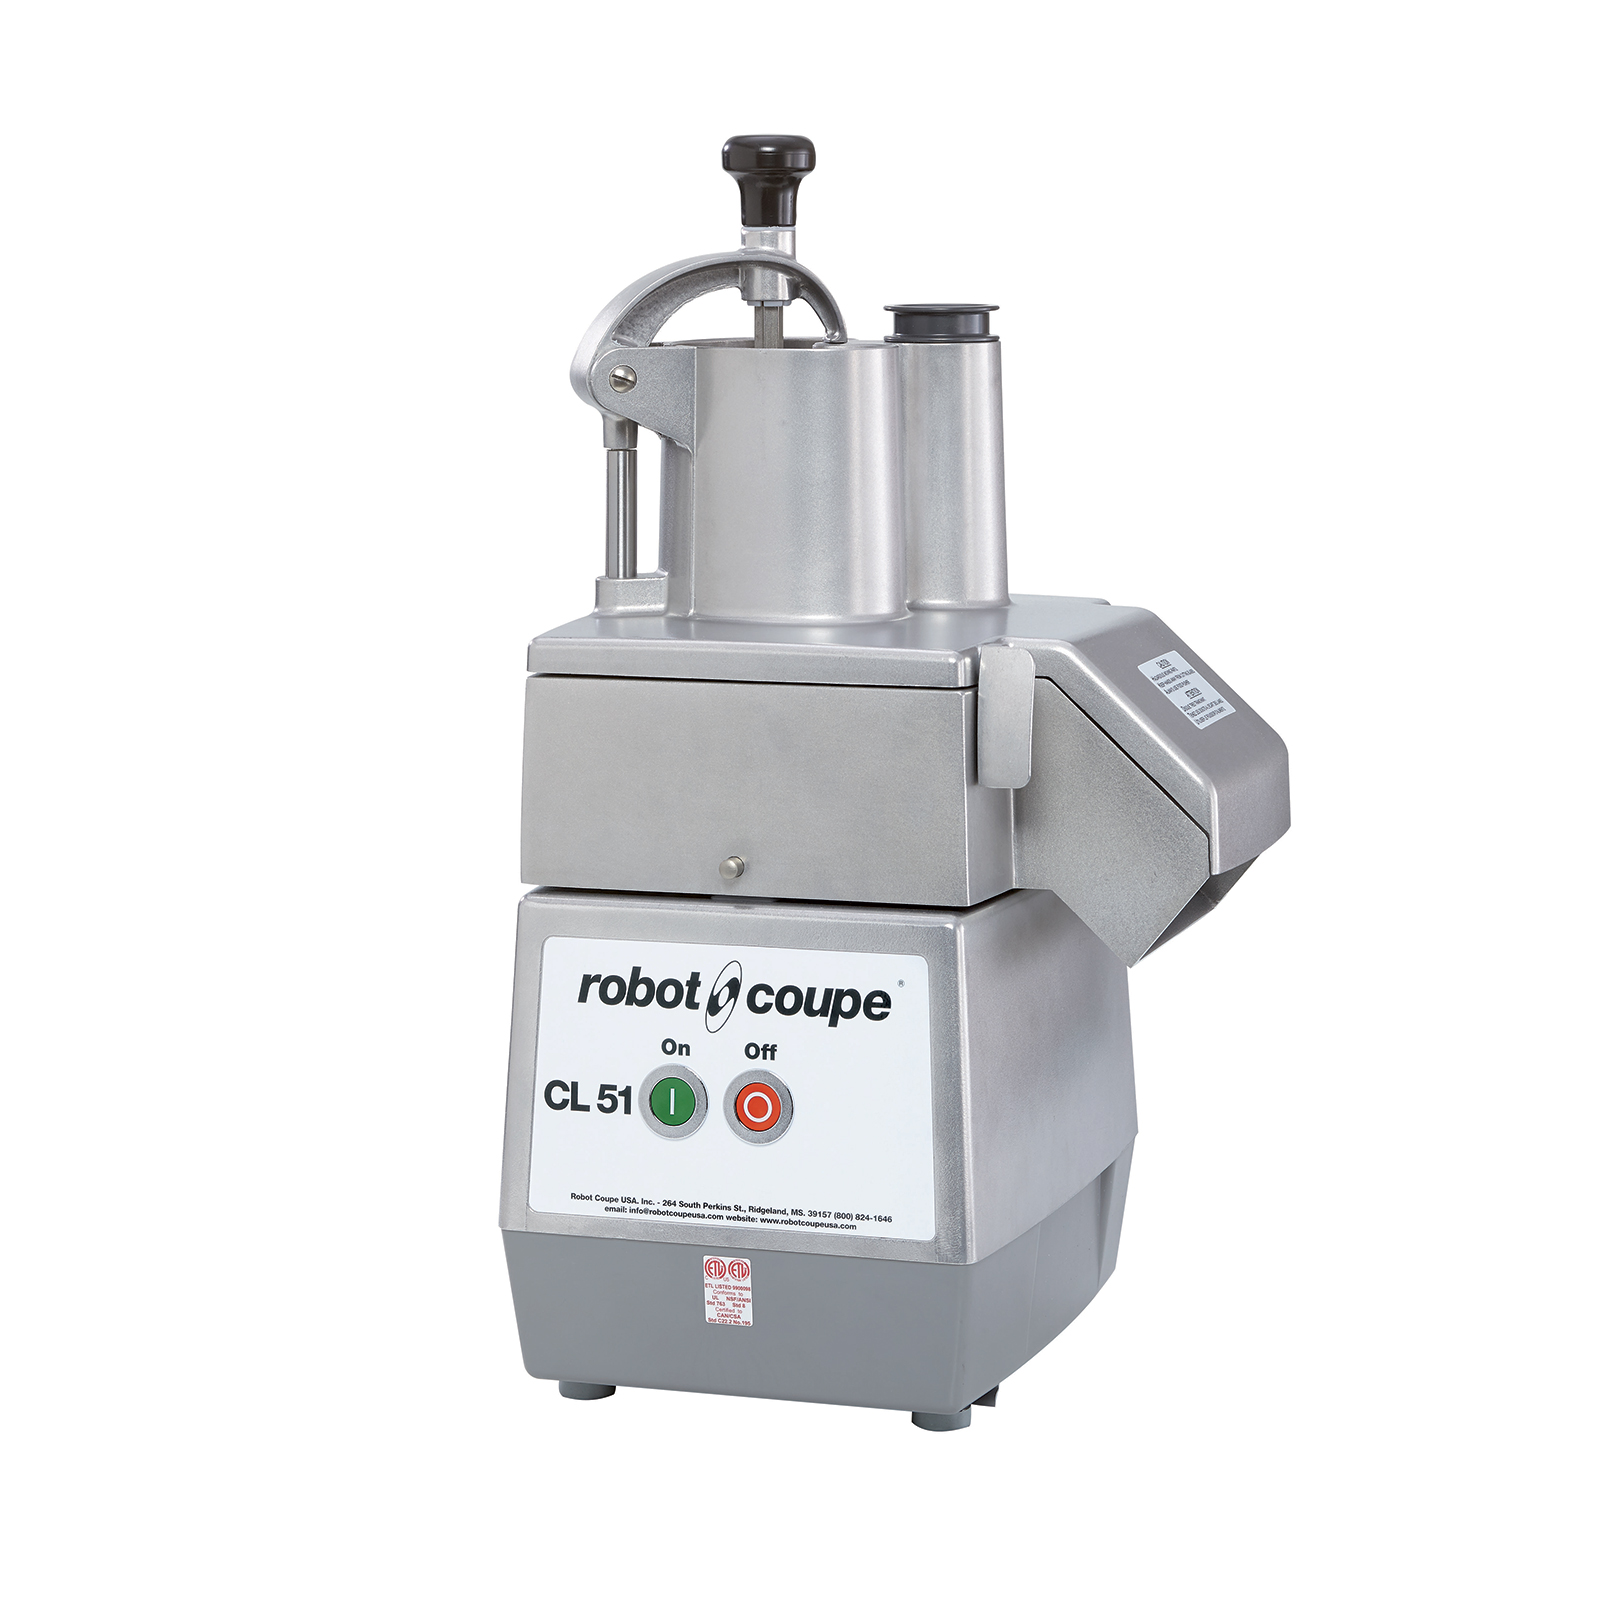 Robot Coupe CL51 food processor, benchtop / countertop